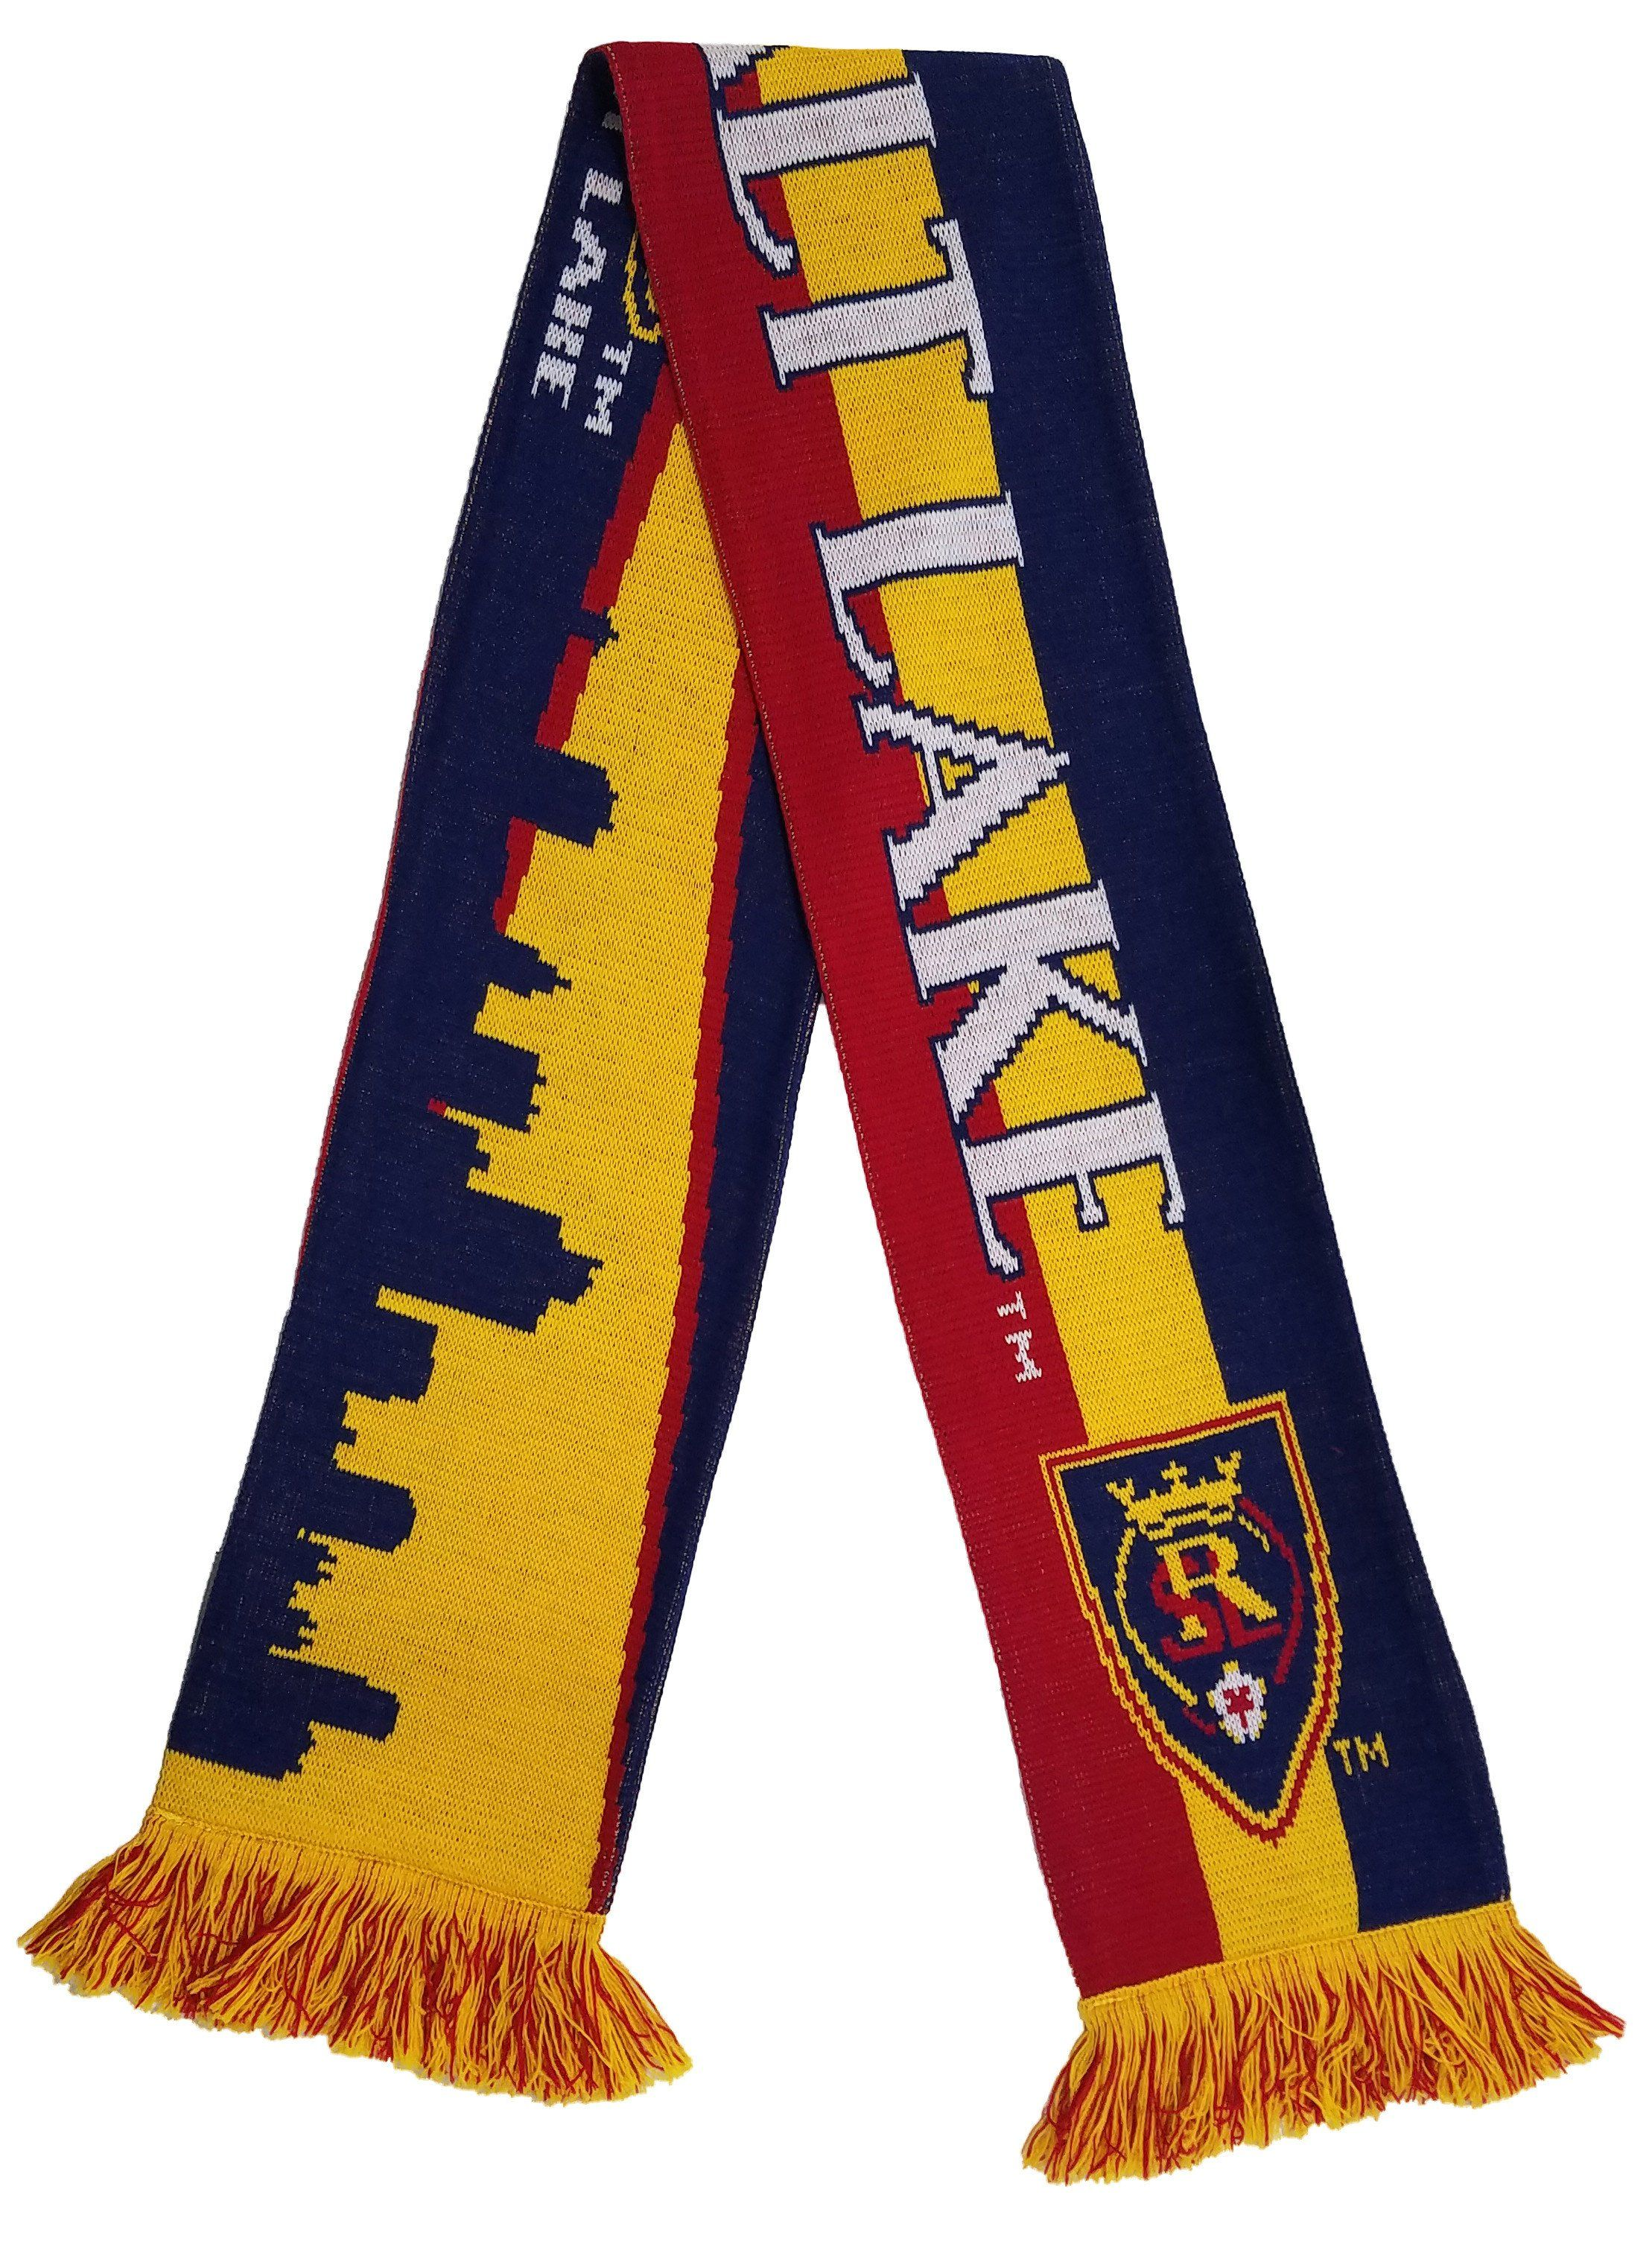 REAL SALT LAKE SCARF - Skyline (Royal)